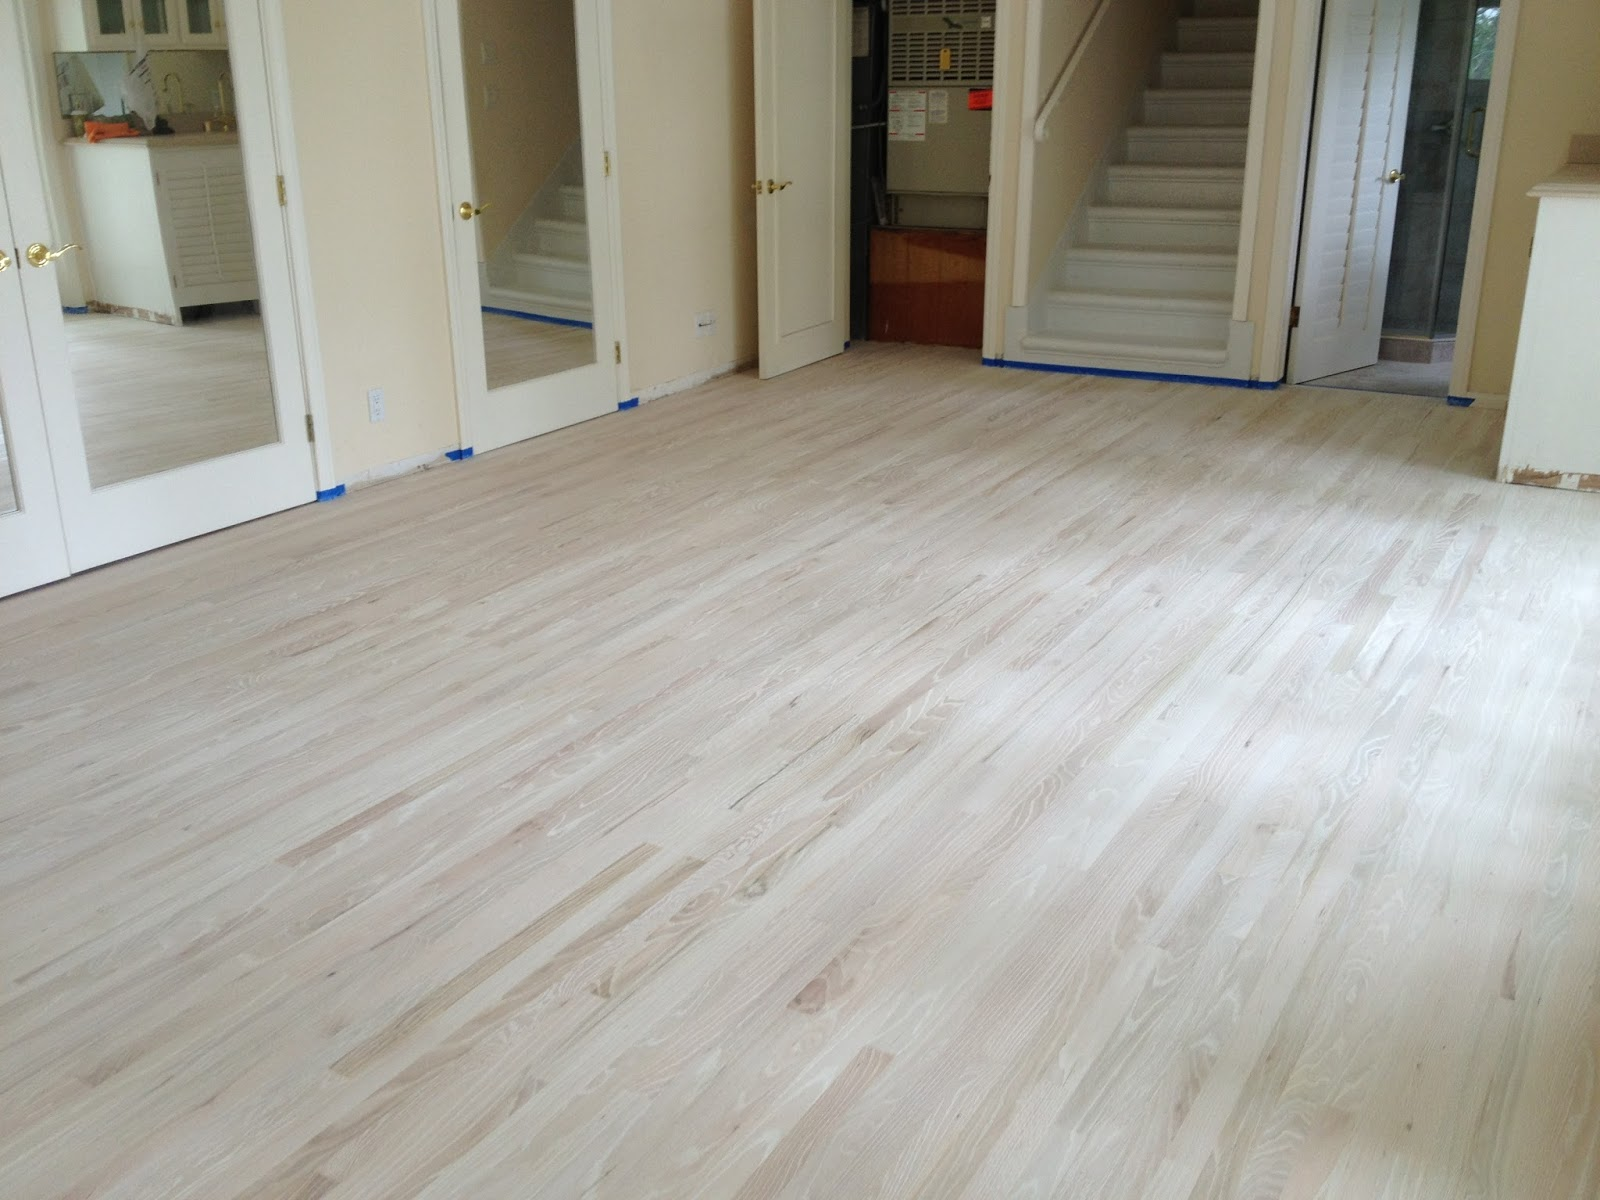 is oakwhite refinish our floor waterbased floors as wood process this oak red blog to old white follows using a year